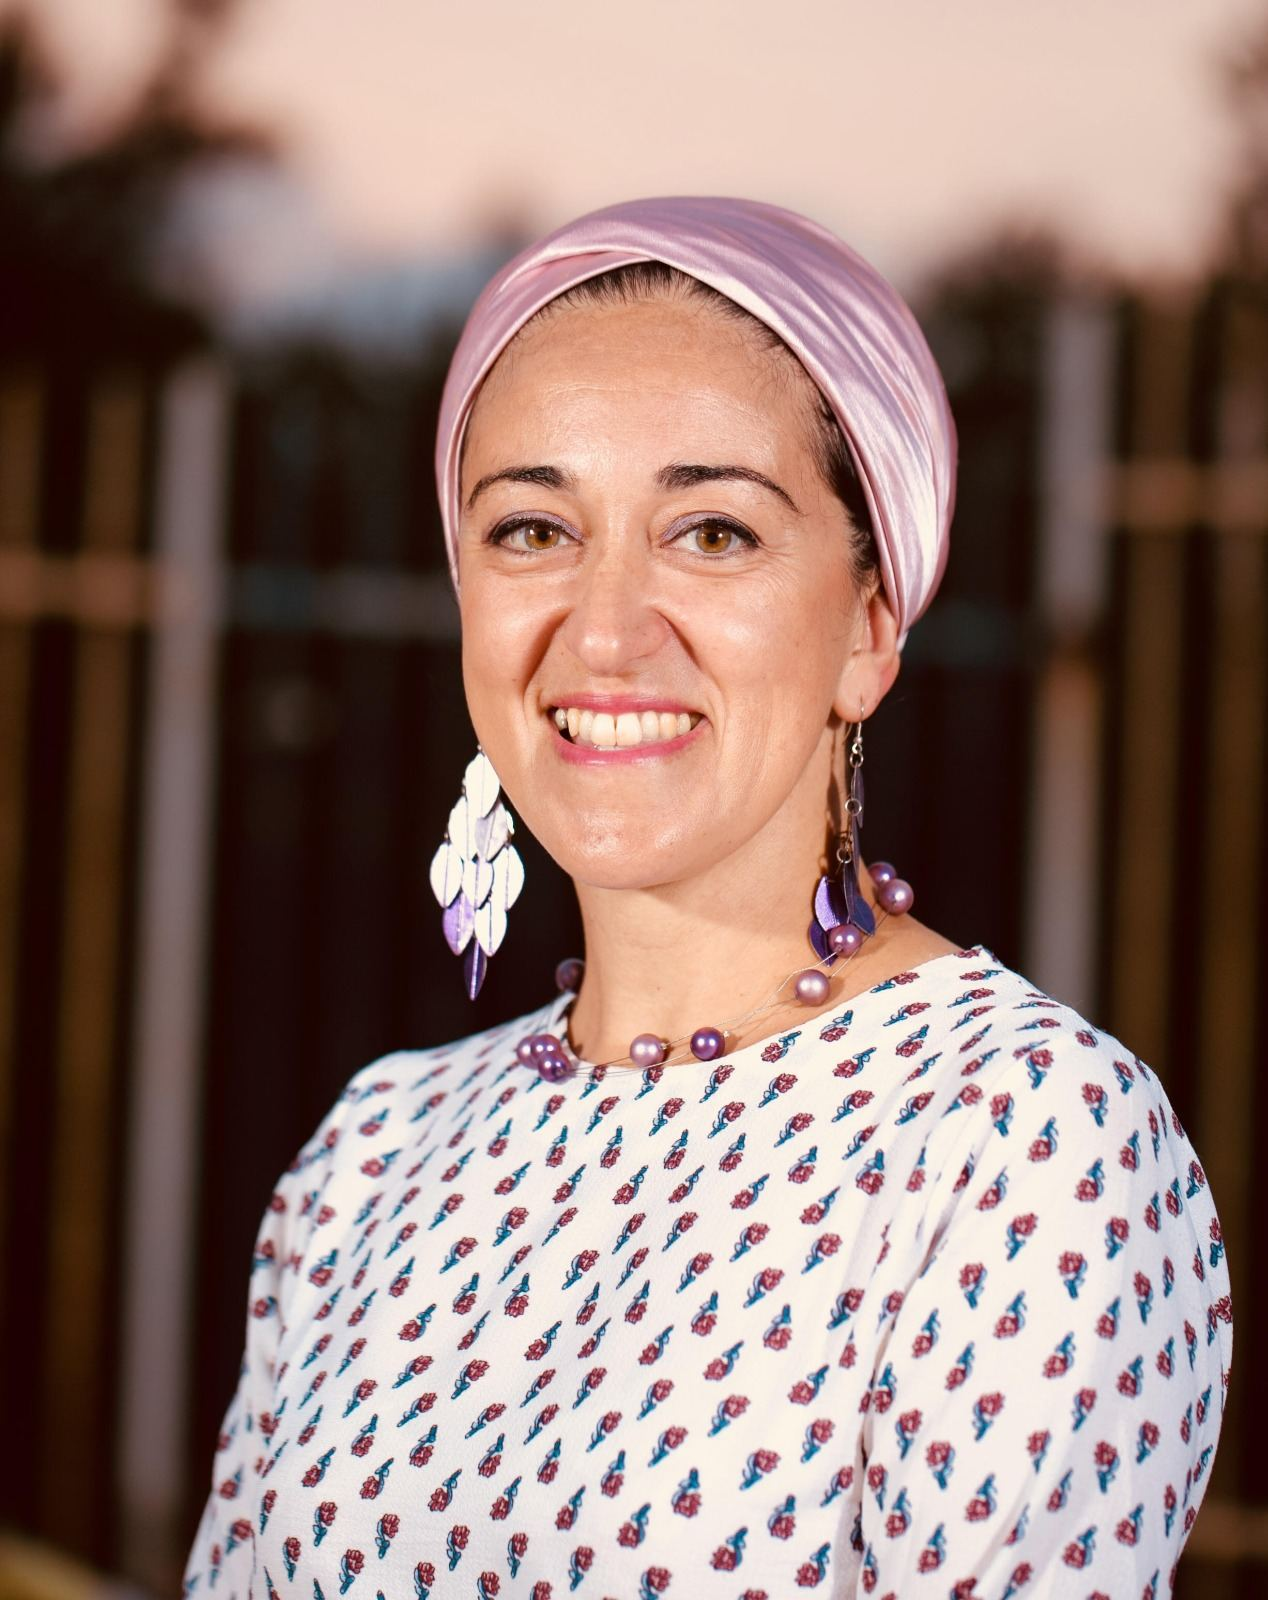 'Samaria town's new female mayor defies stereotypes'